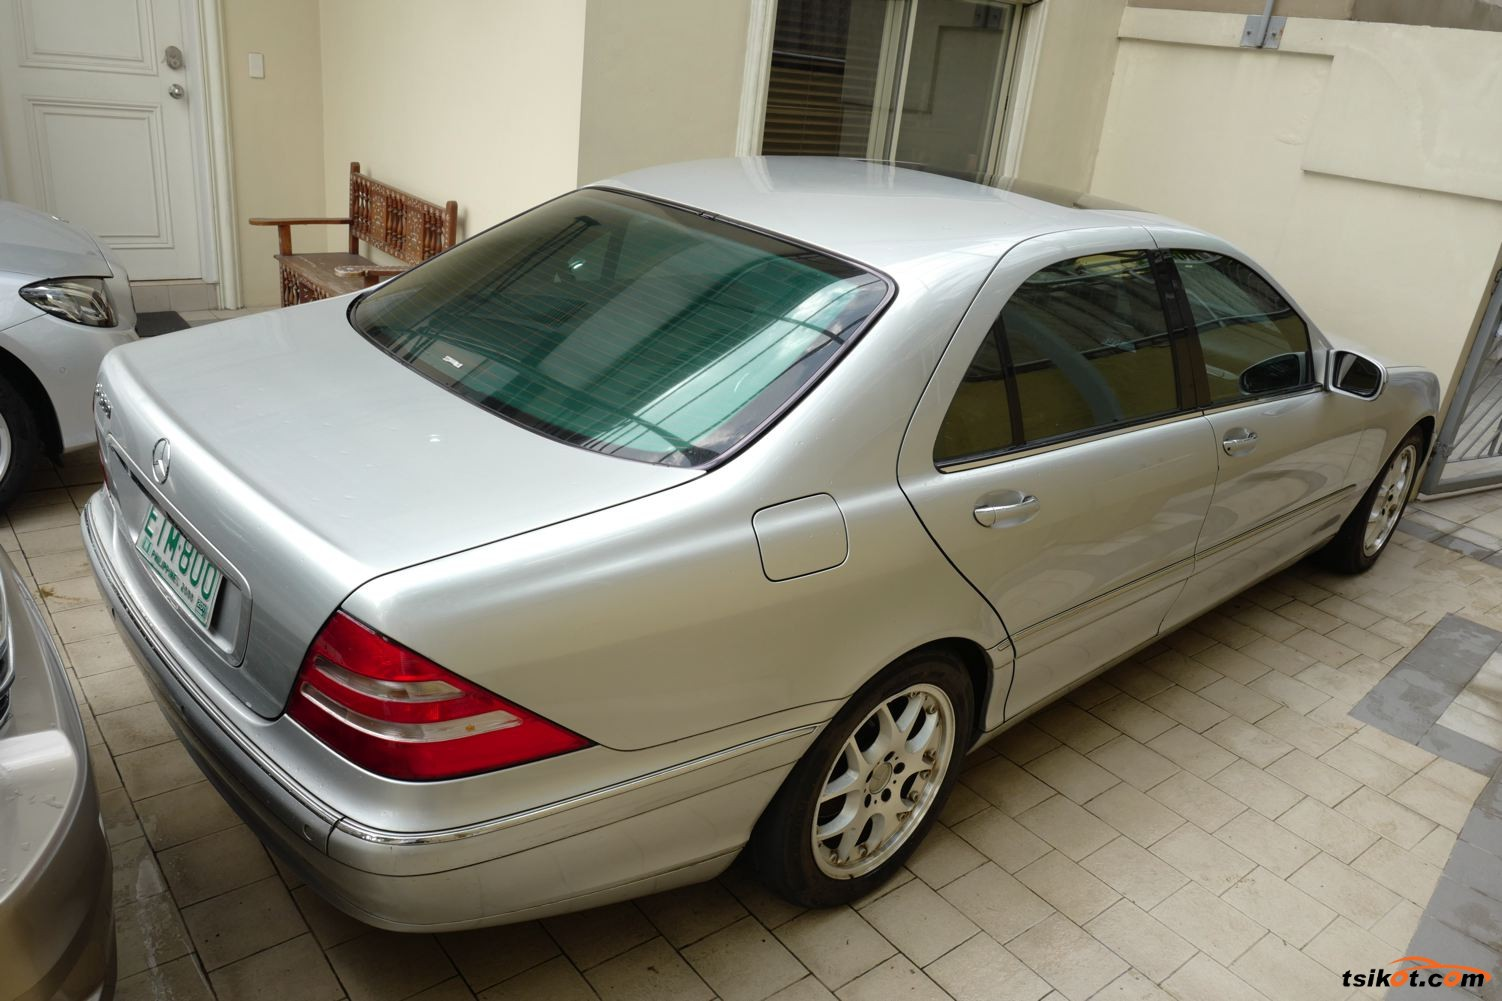 Mercedes benz s class 2007 car for sale metro manila for Mercedes benz insurance